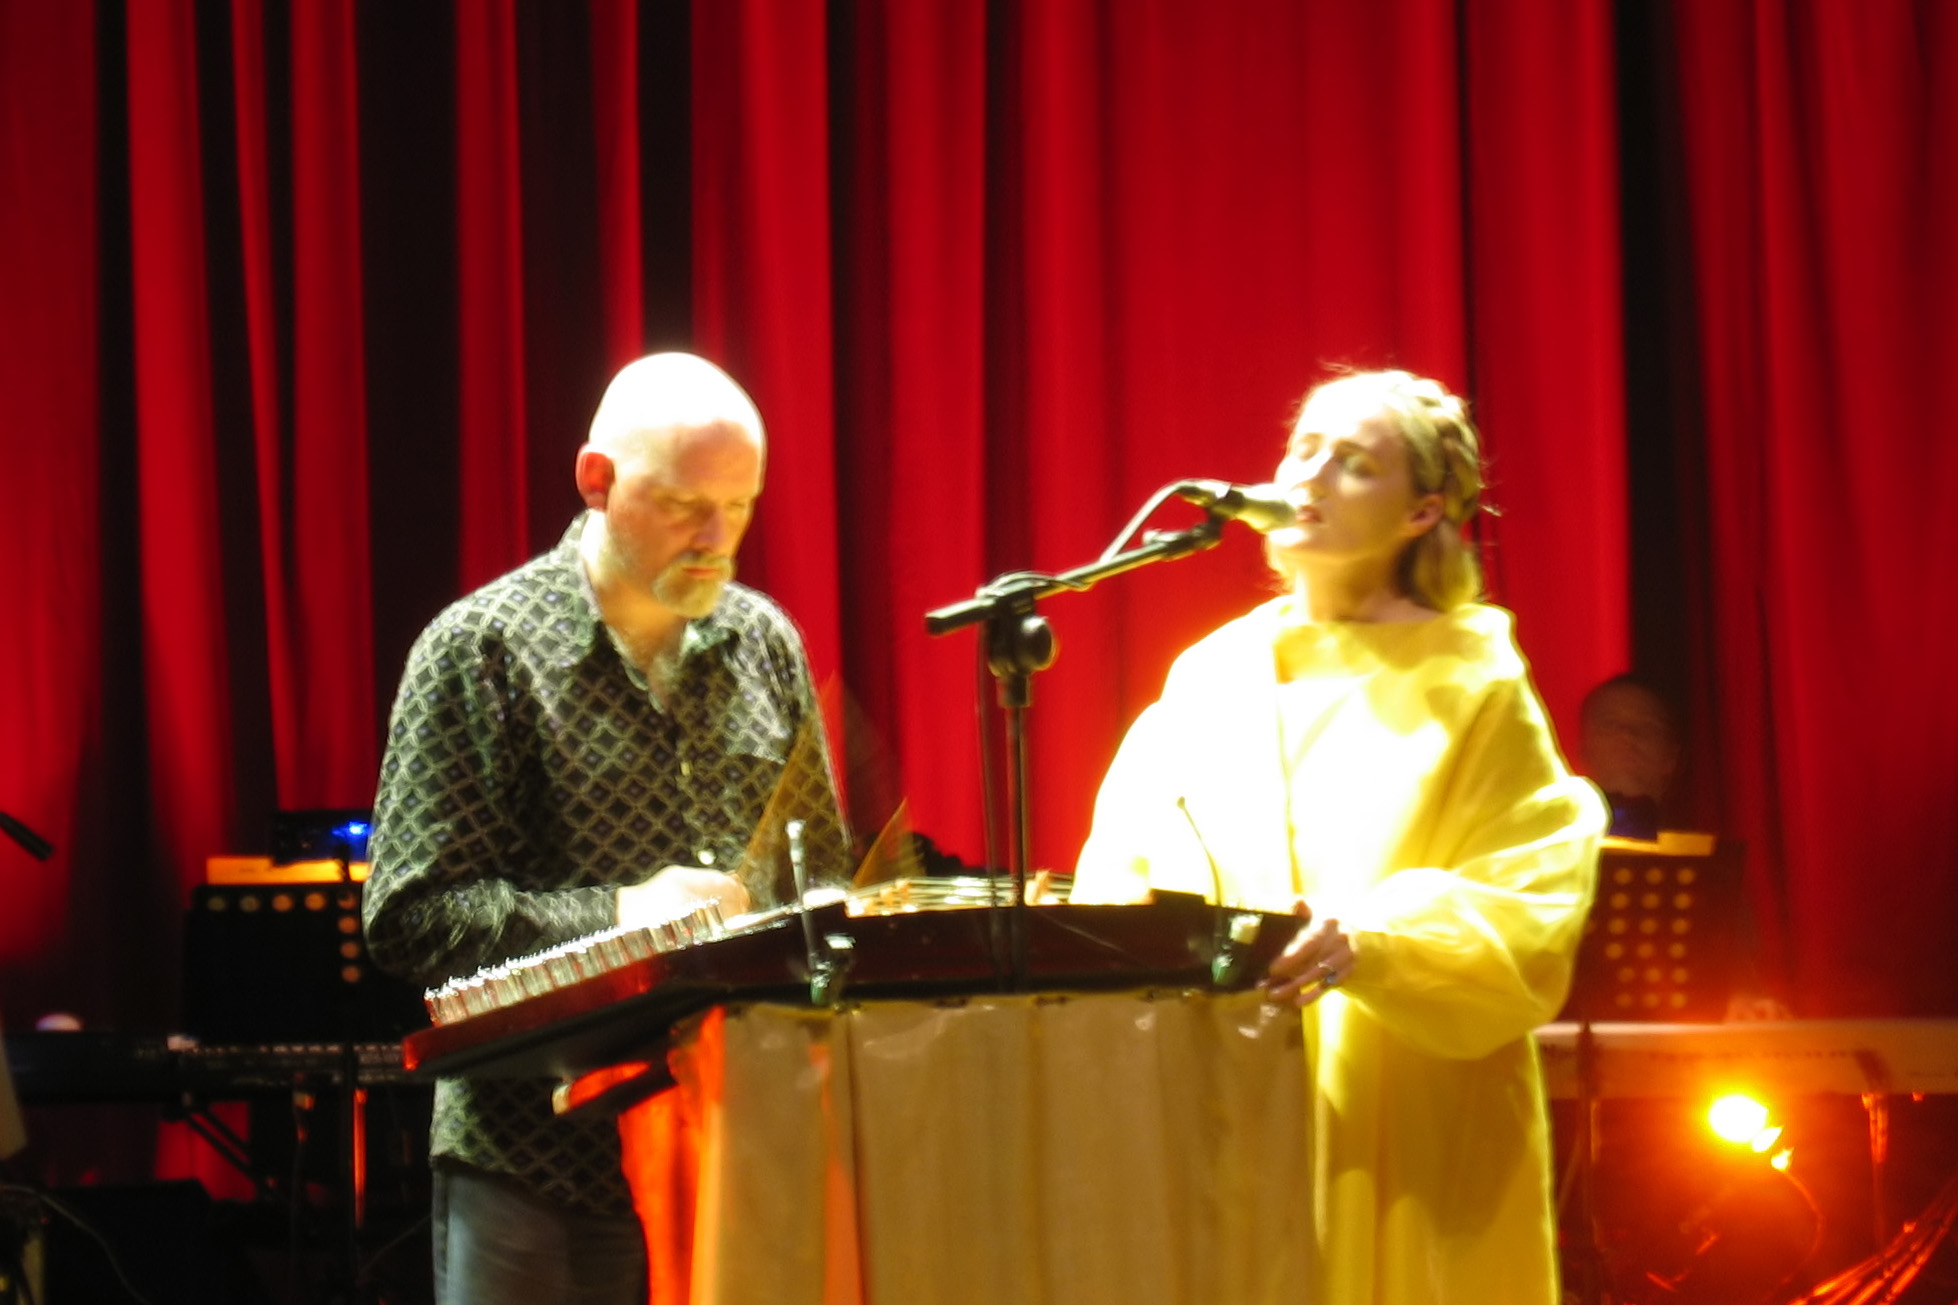 Dead Can Dance in concert 2005